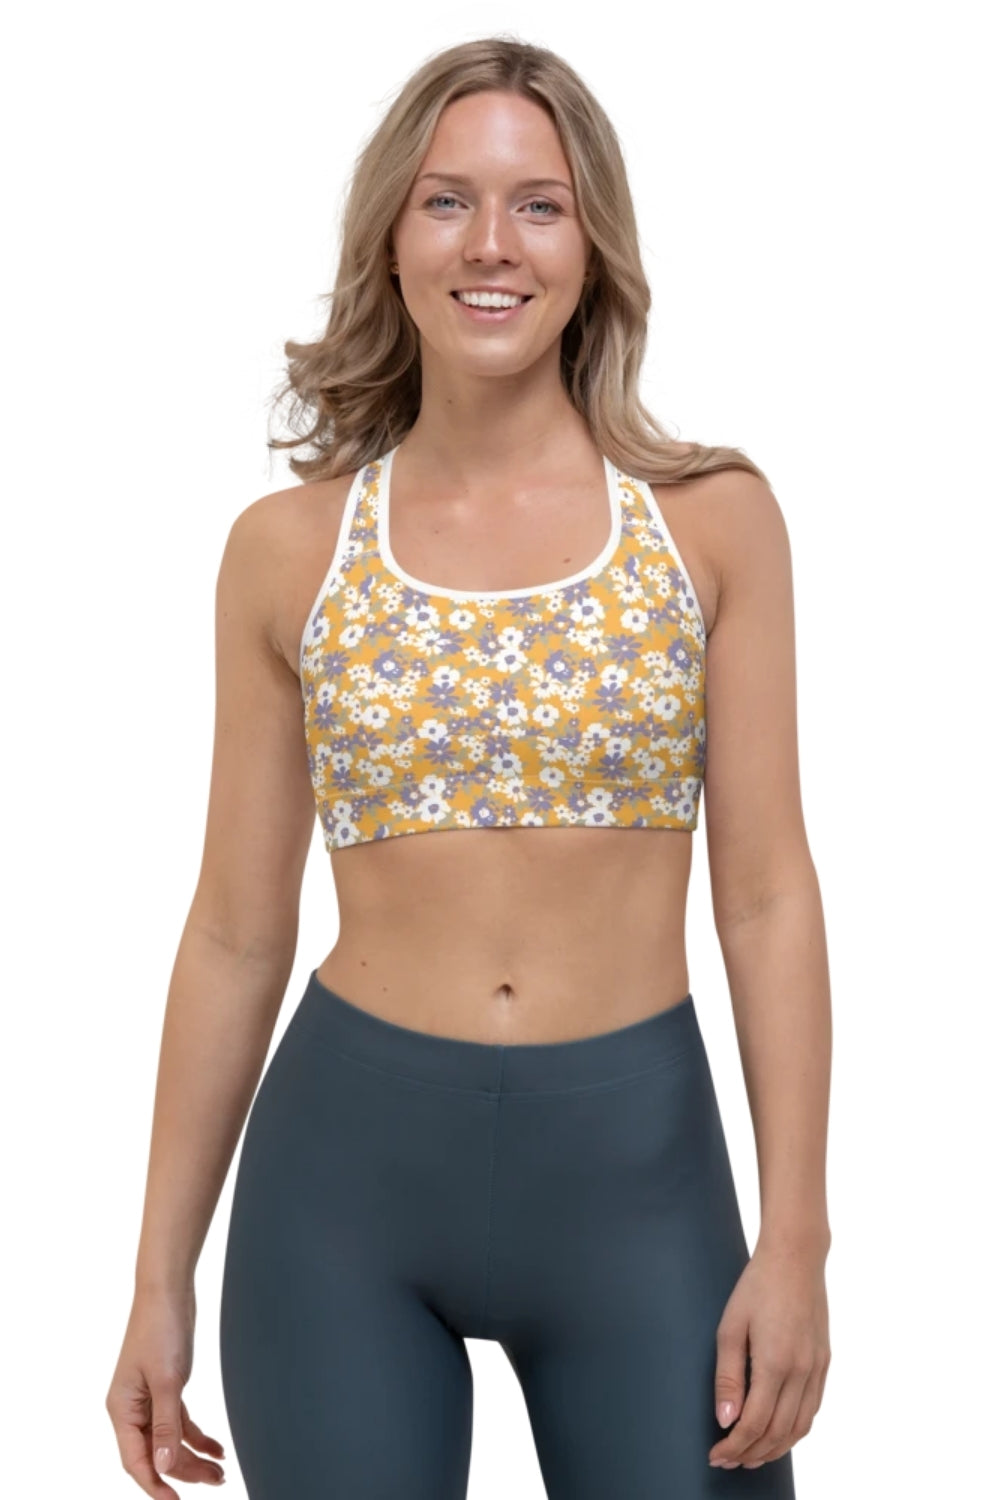 Woodstock Sports Bra